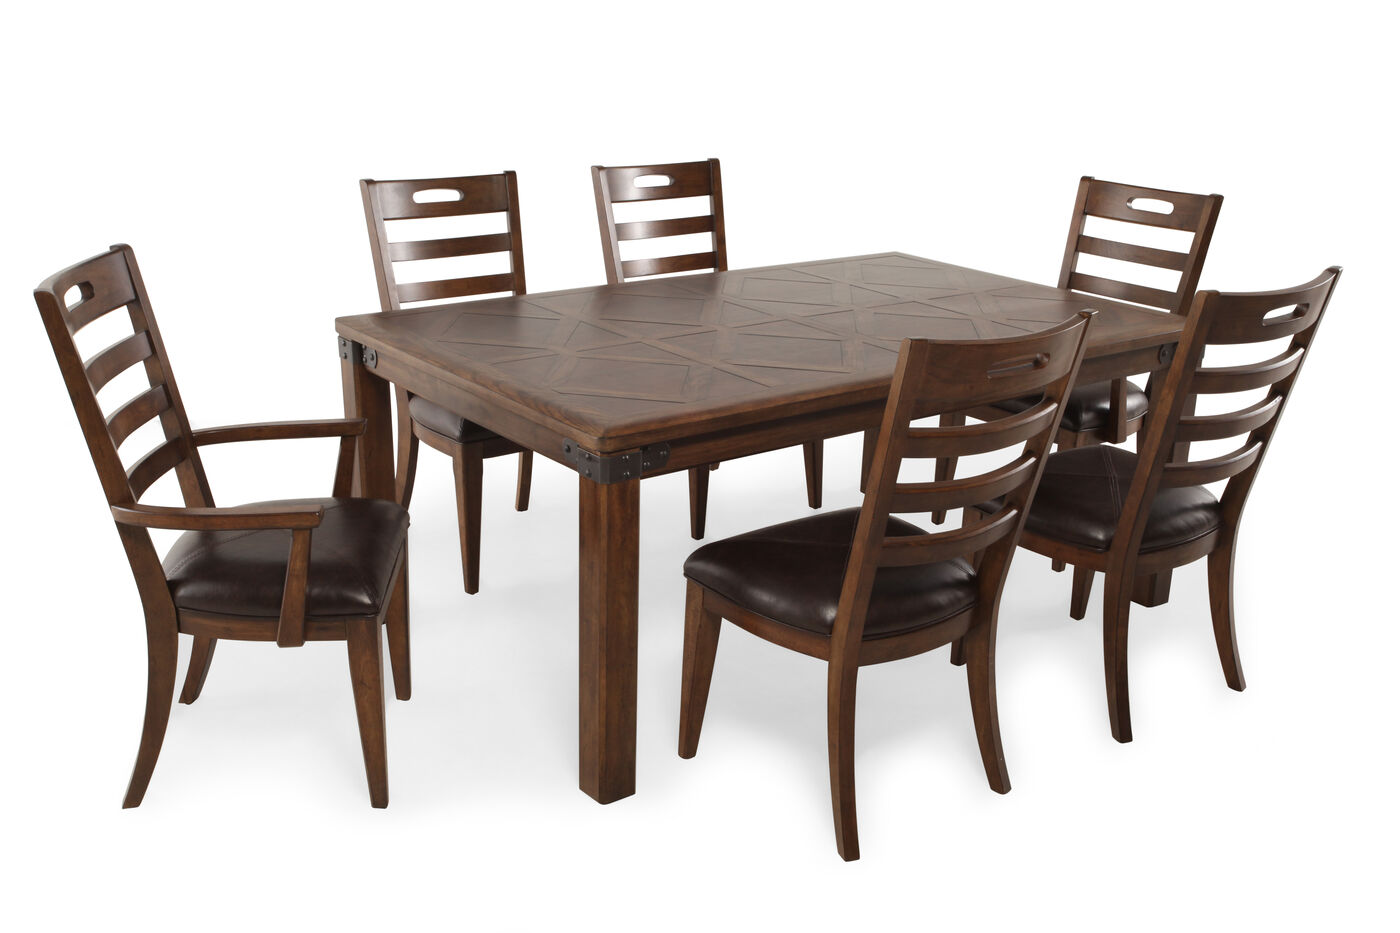 Pulaski heartland falls seven piece dining set mathis brothers furniture - Pulaski dining room ...